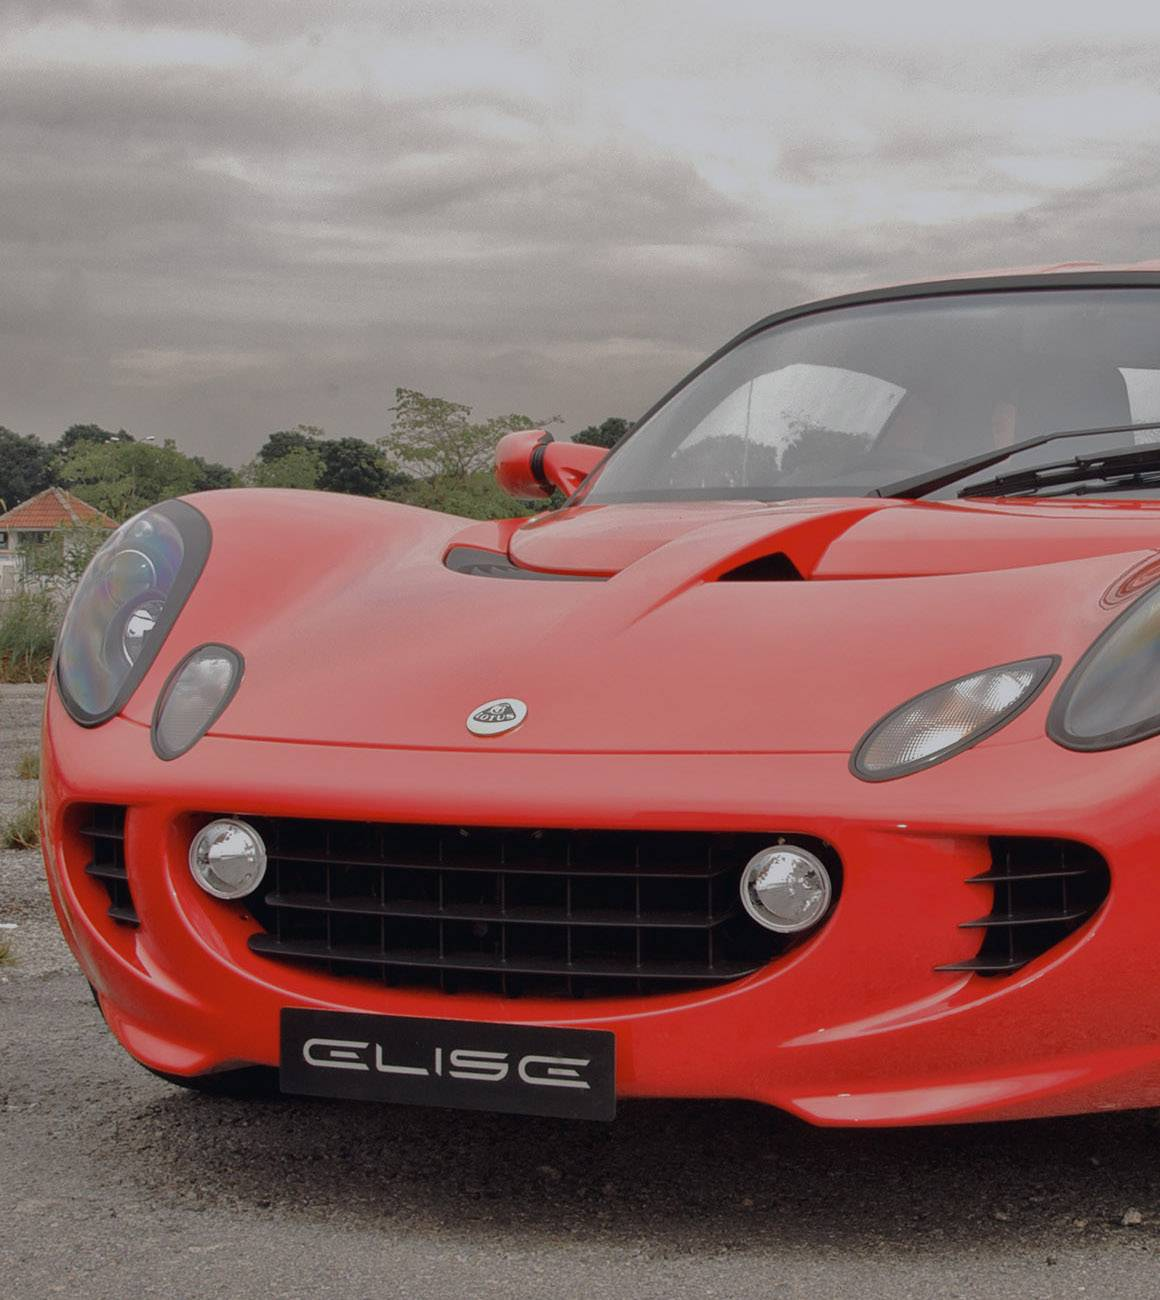 Compare Lotus insurance costs for all models